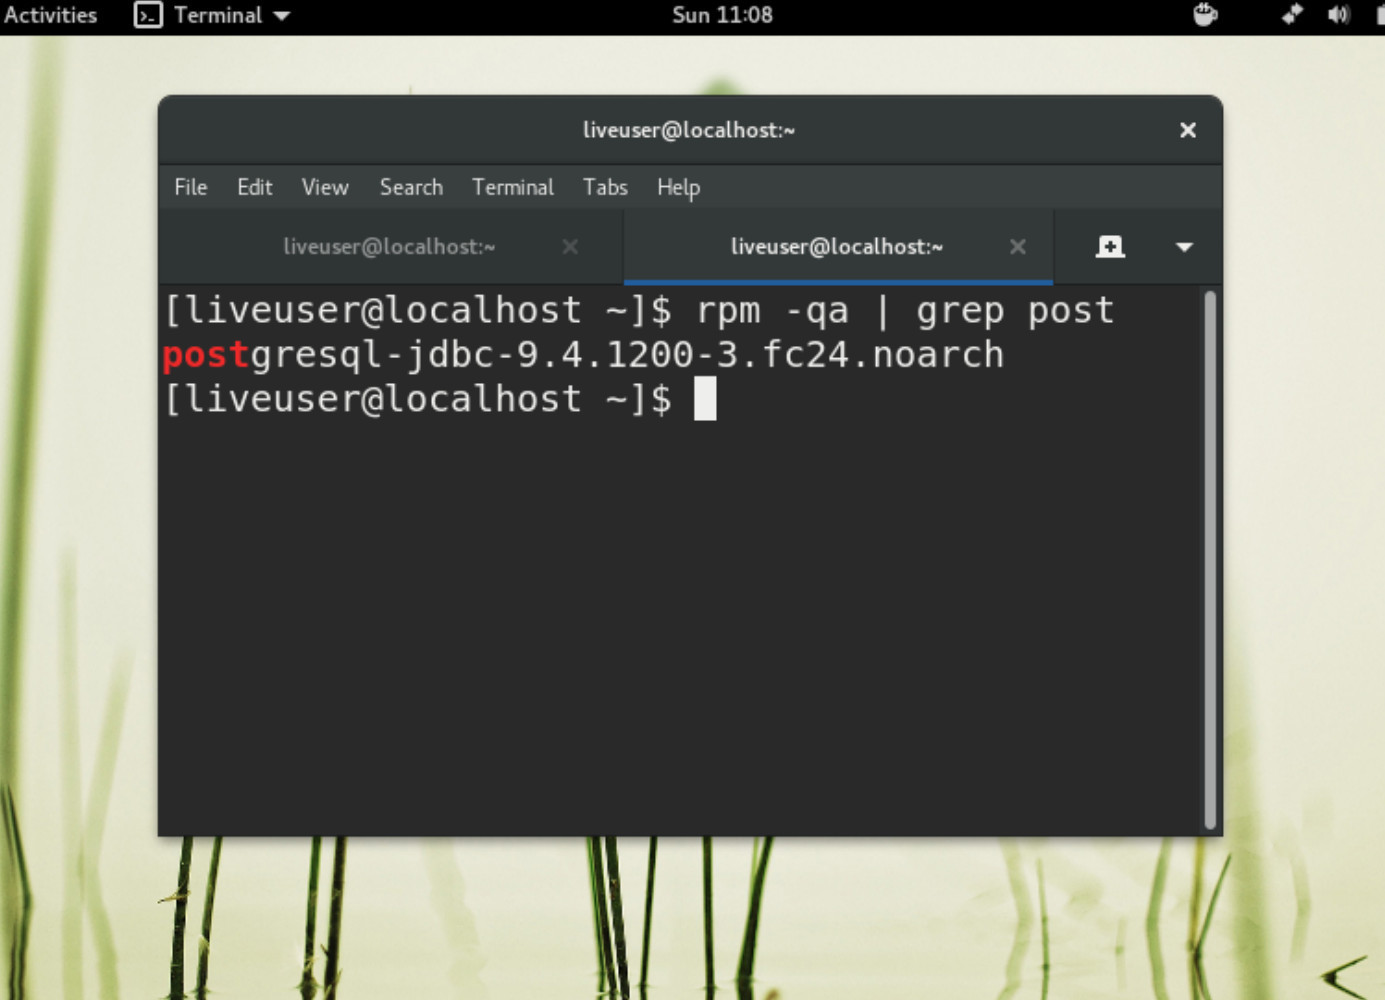 Screenshot of Fedora Linux using grep to look for PostgreSQL packages